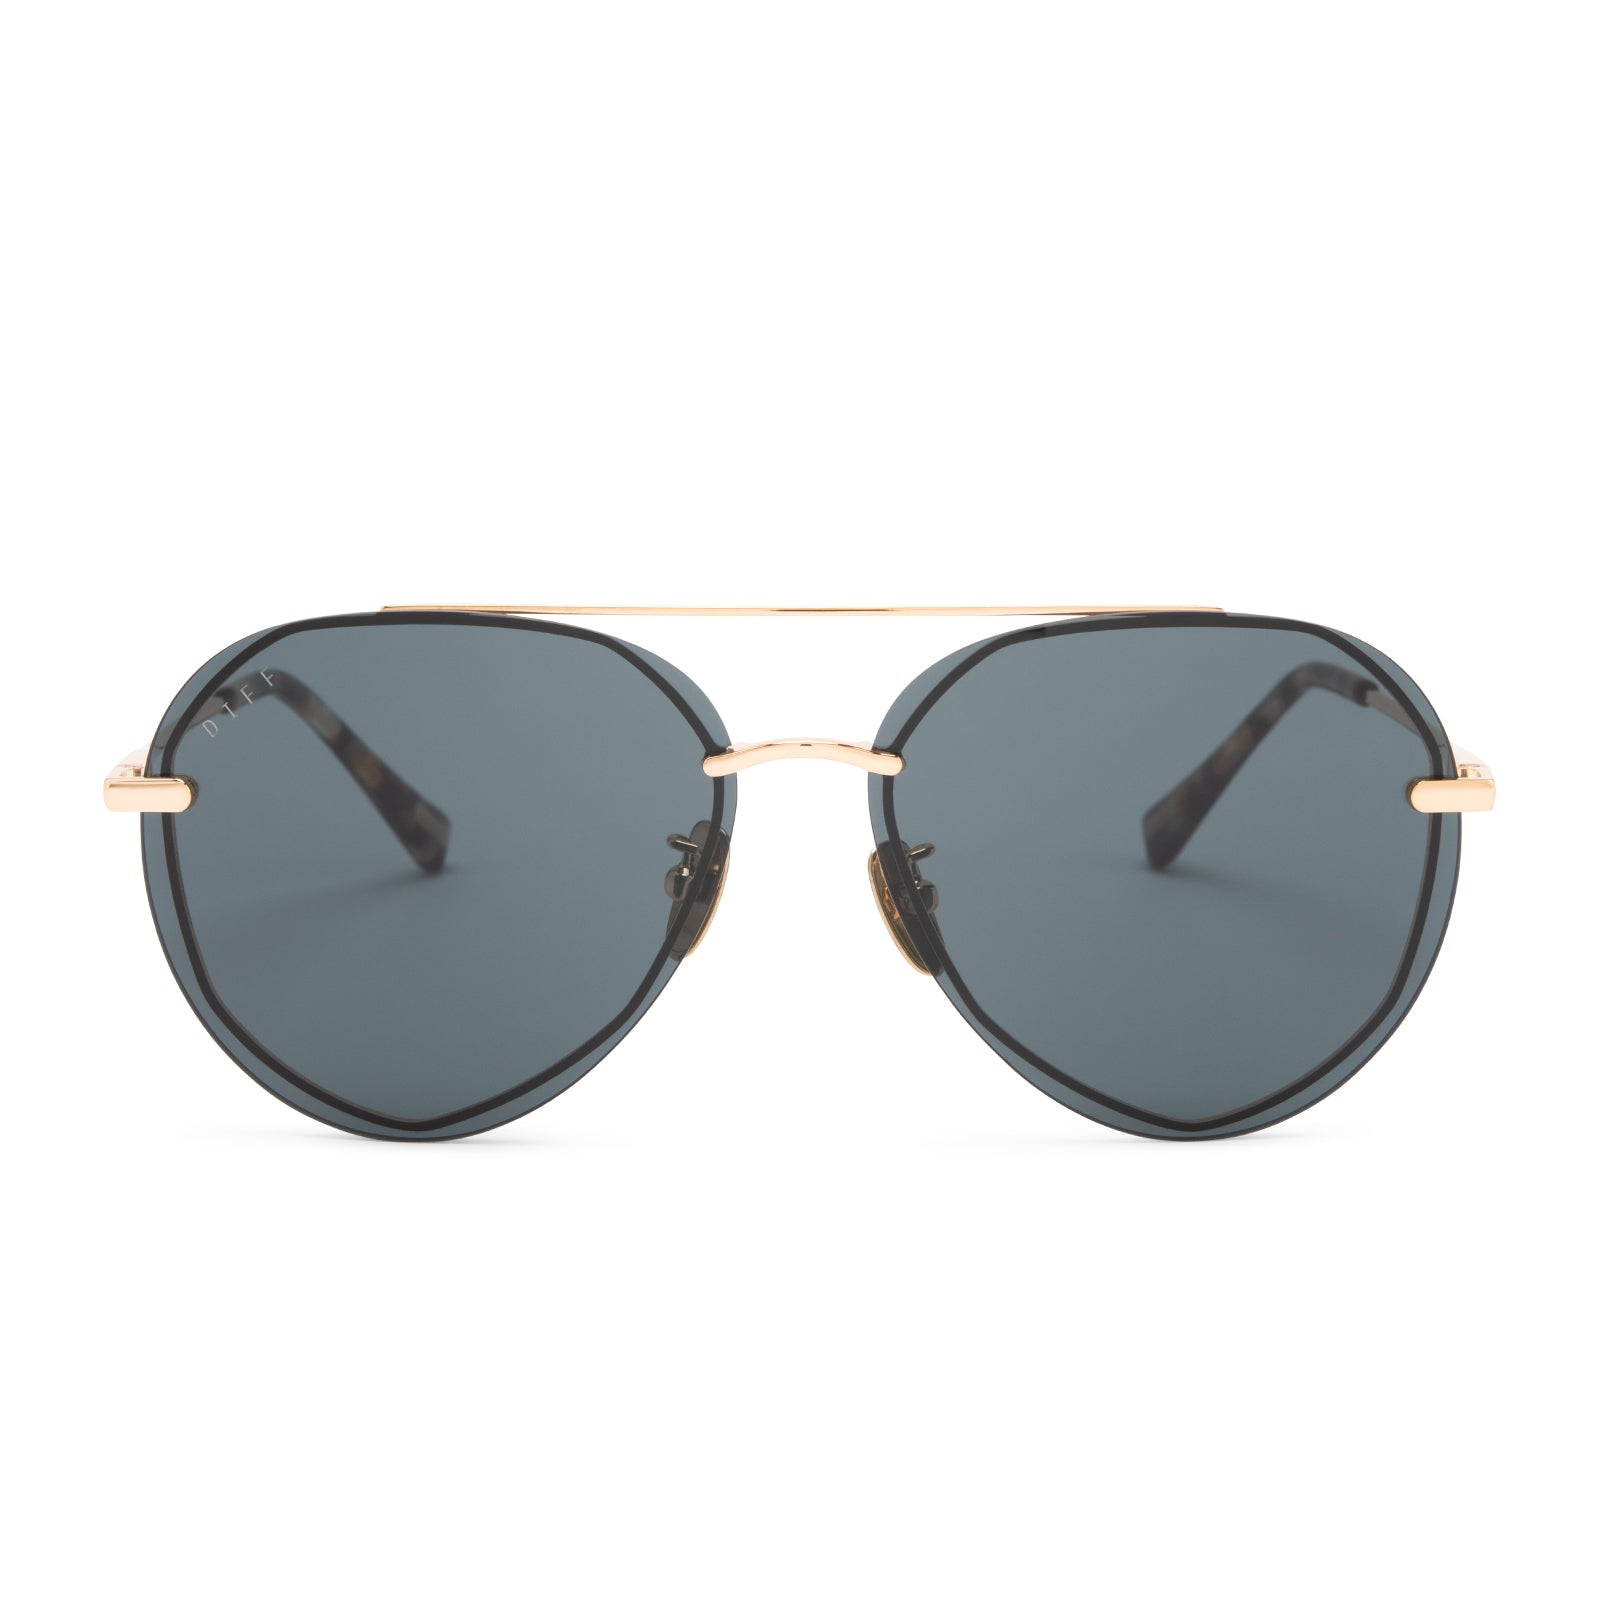 Lenox sunglasses with gold frames and G15 polarized lens front view